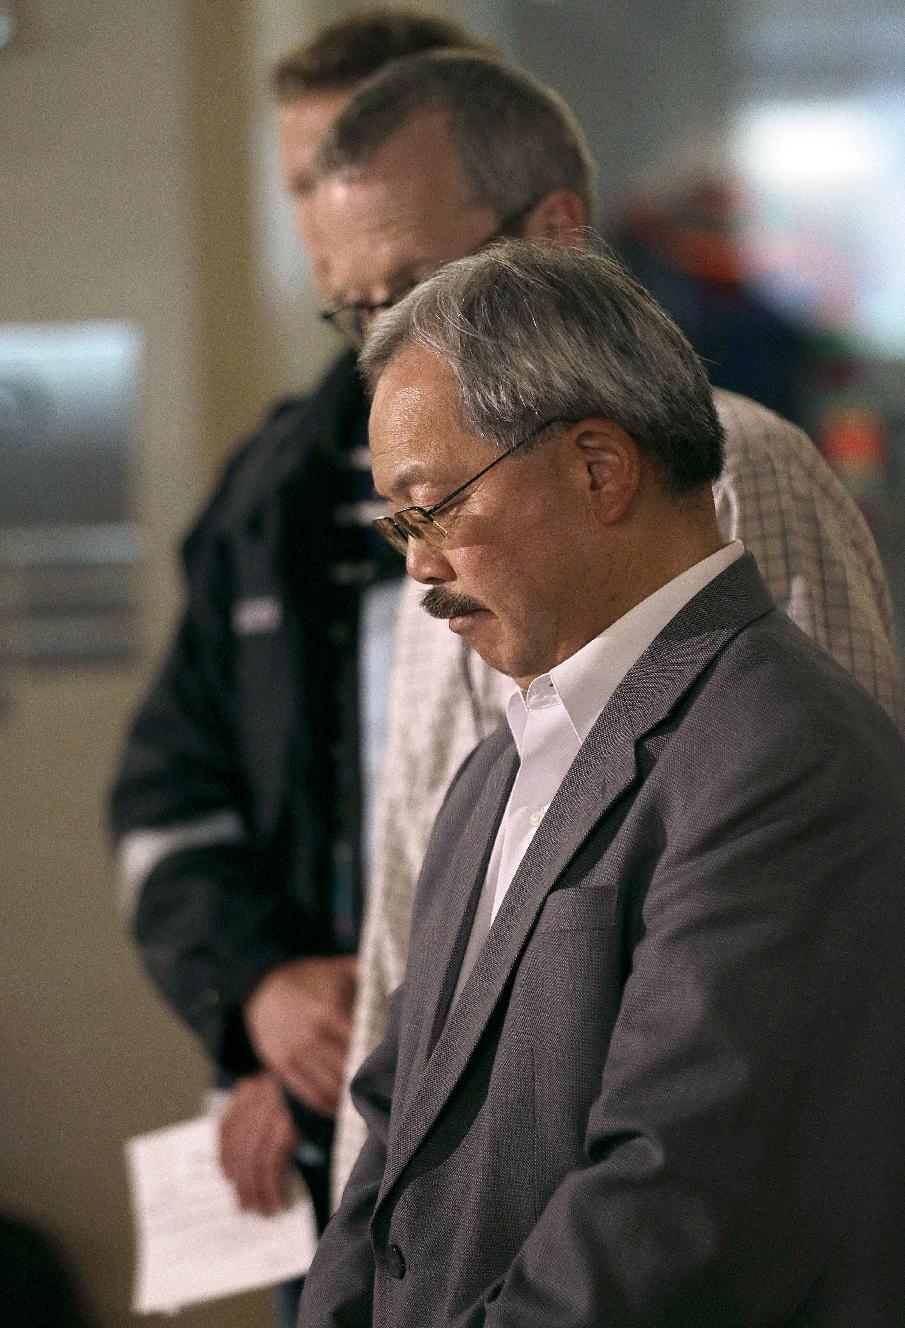 San Francisco Mayor Ed Lee listens to speakers at a news conference after Asiana Flight 214 crashed at San Francisco International Airport in San Francisco, Saturday, July 6, 2013. (AP Photo/Jeff Chiu)